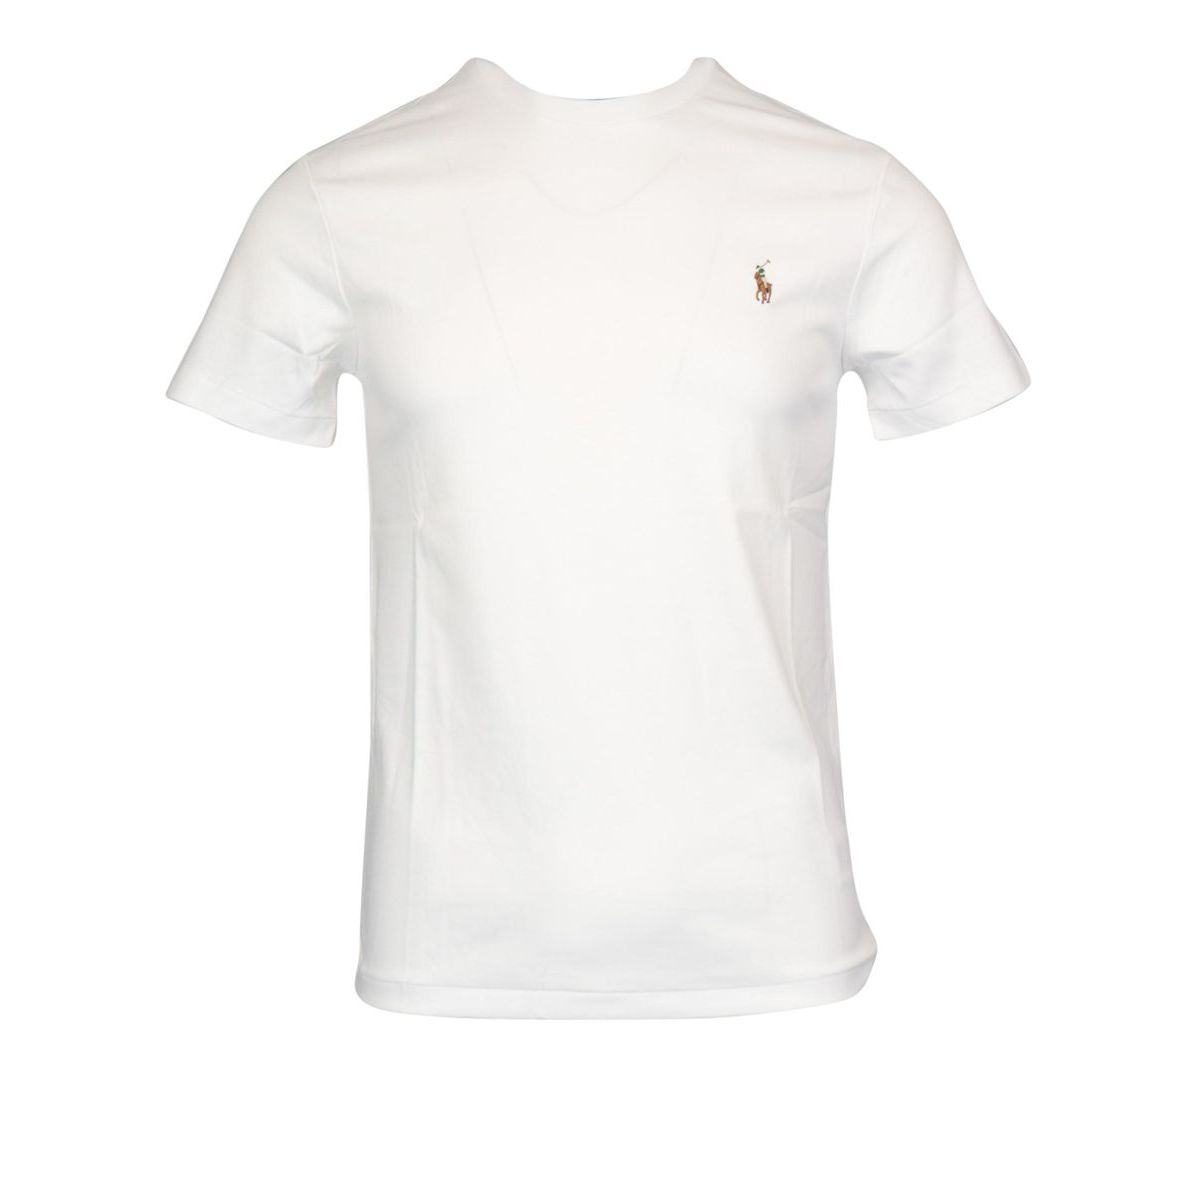 Crew neck t-shirt in cotton jersey with logo embroidery White Polo Ralph Lauren